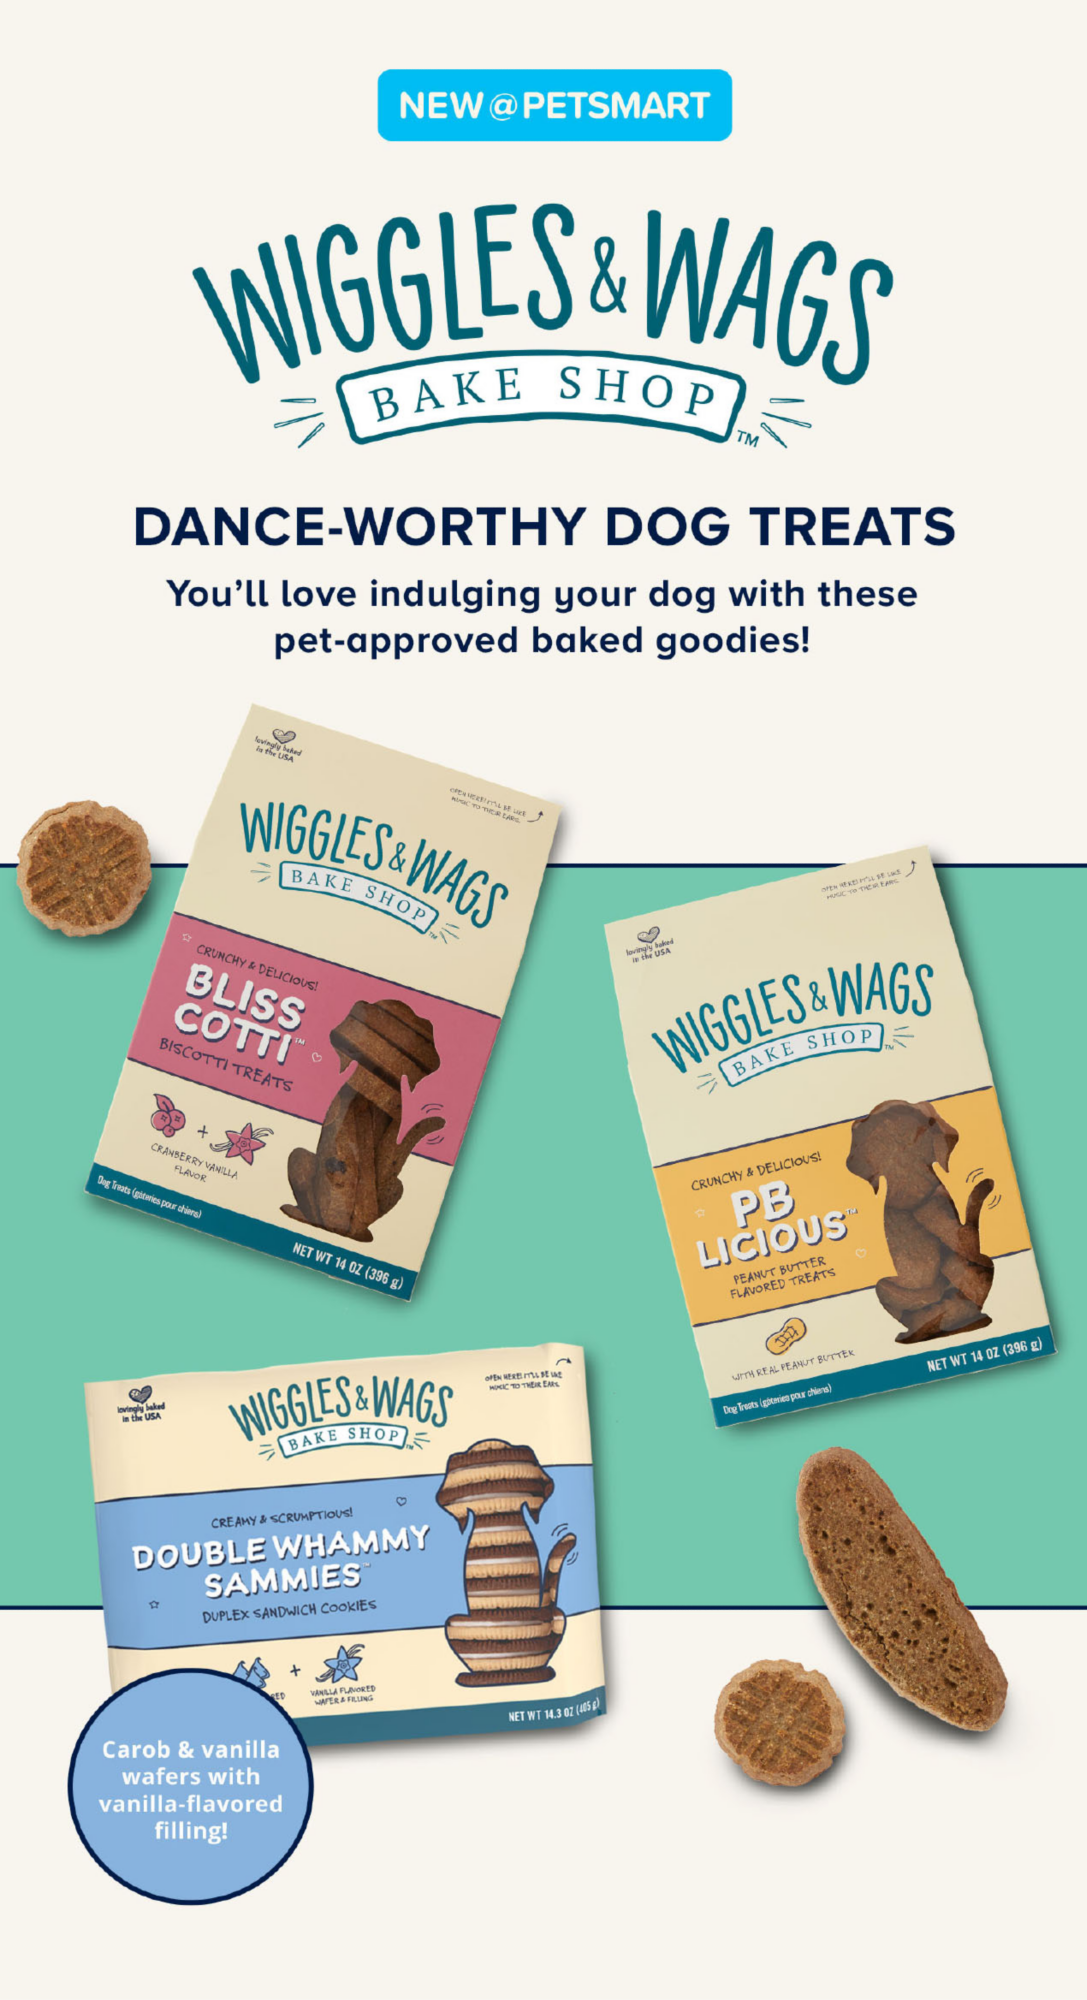 New @Petsmart                         WIGGLES & WAGS                         BAKE SHOP                         DANCE-WORTHY DOG TREATS                         You'll love induling your dog with these pre-aproved baked goodies!